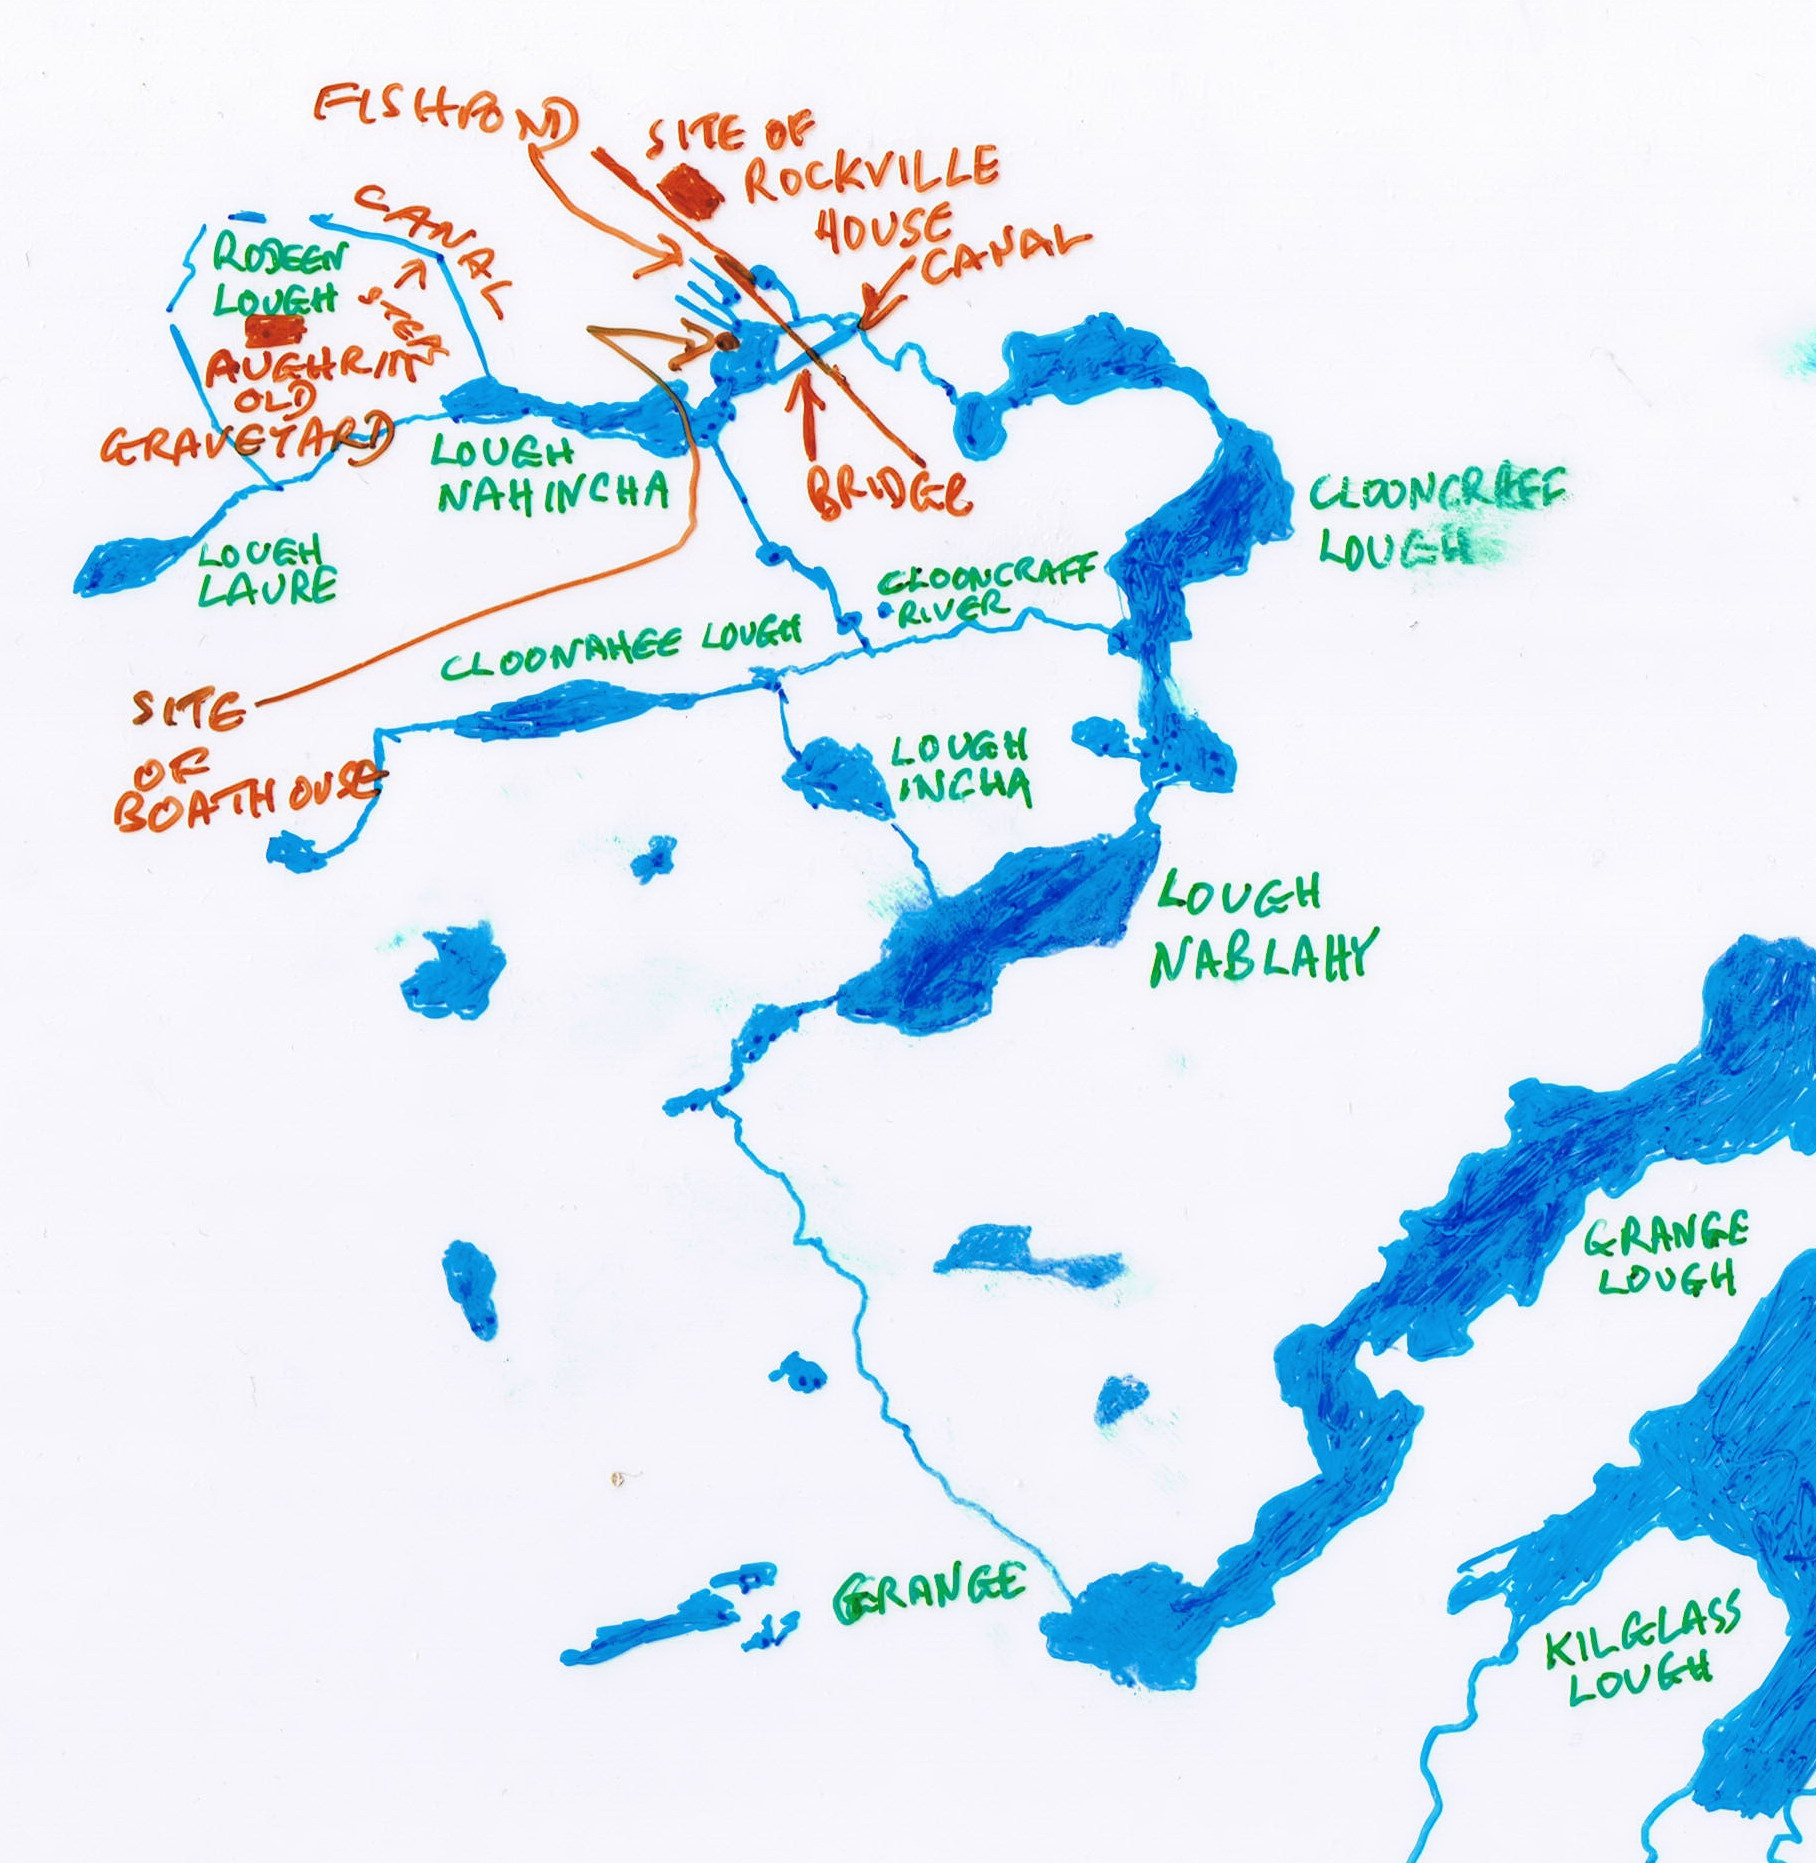 Sketch Map Of Ireland.The Rockville Navigation Page 1 Irish Waterways History